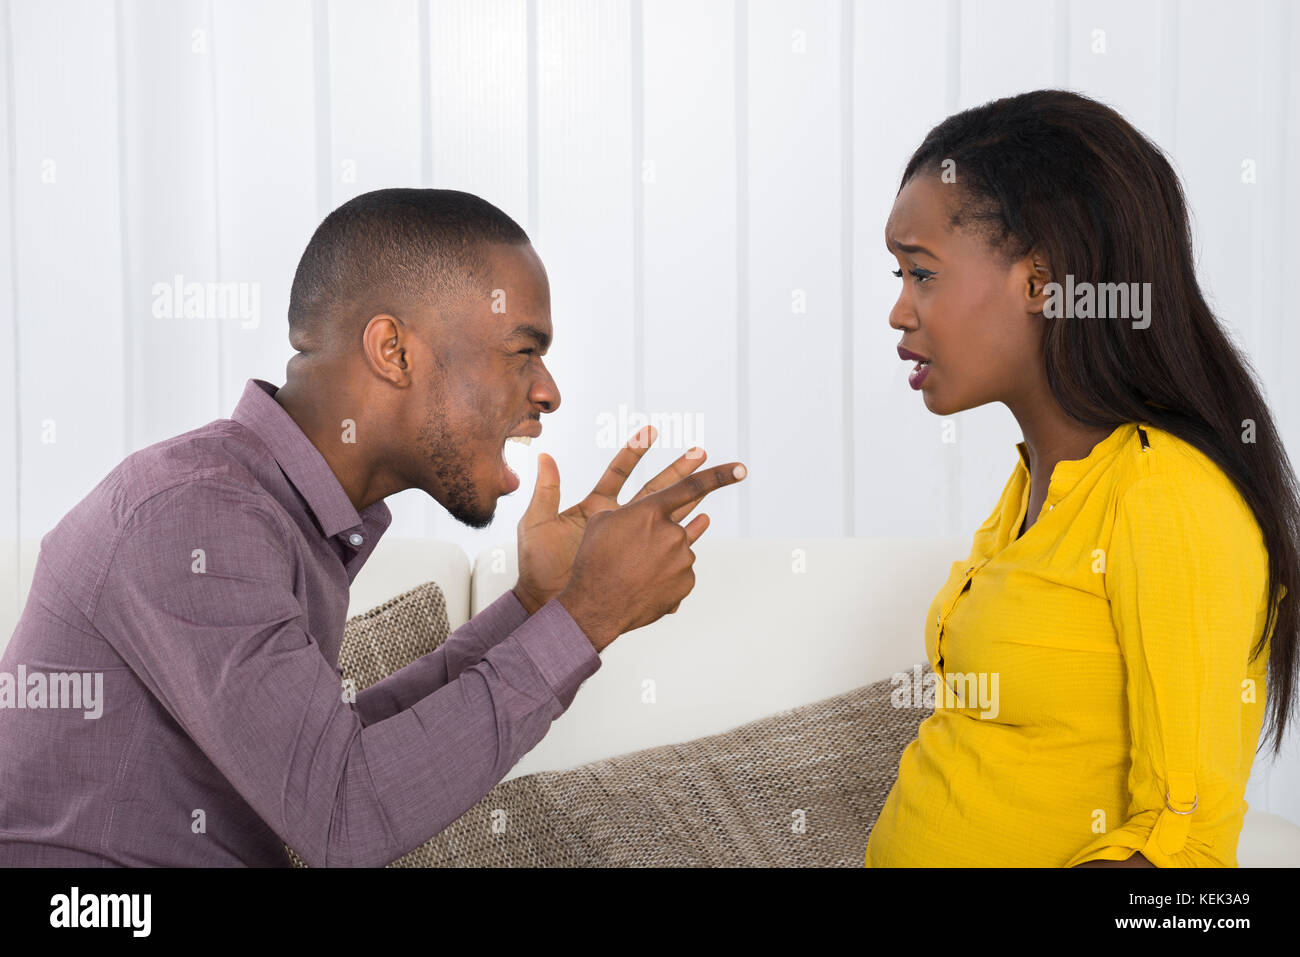 Harassment Woman Man Stock Photos & Harassment Woman Man ...